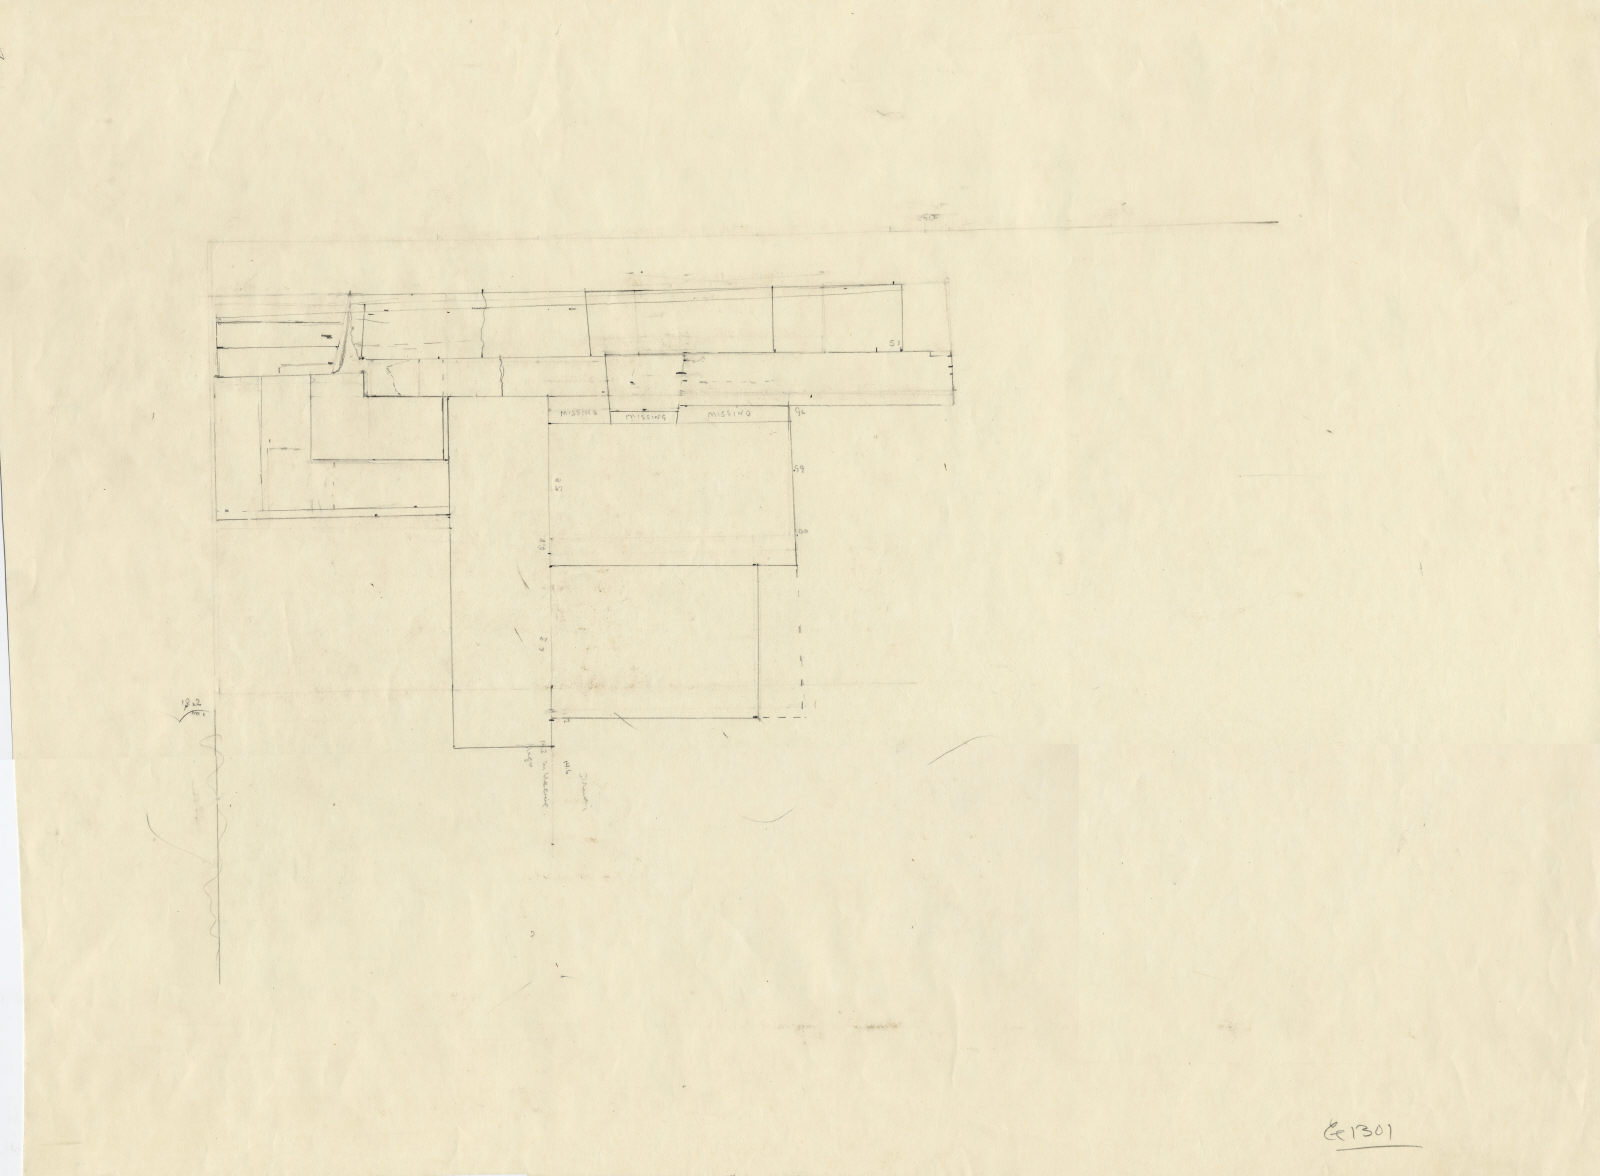 Maps and plans: G 1301: blocks of W wall